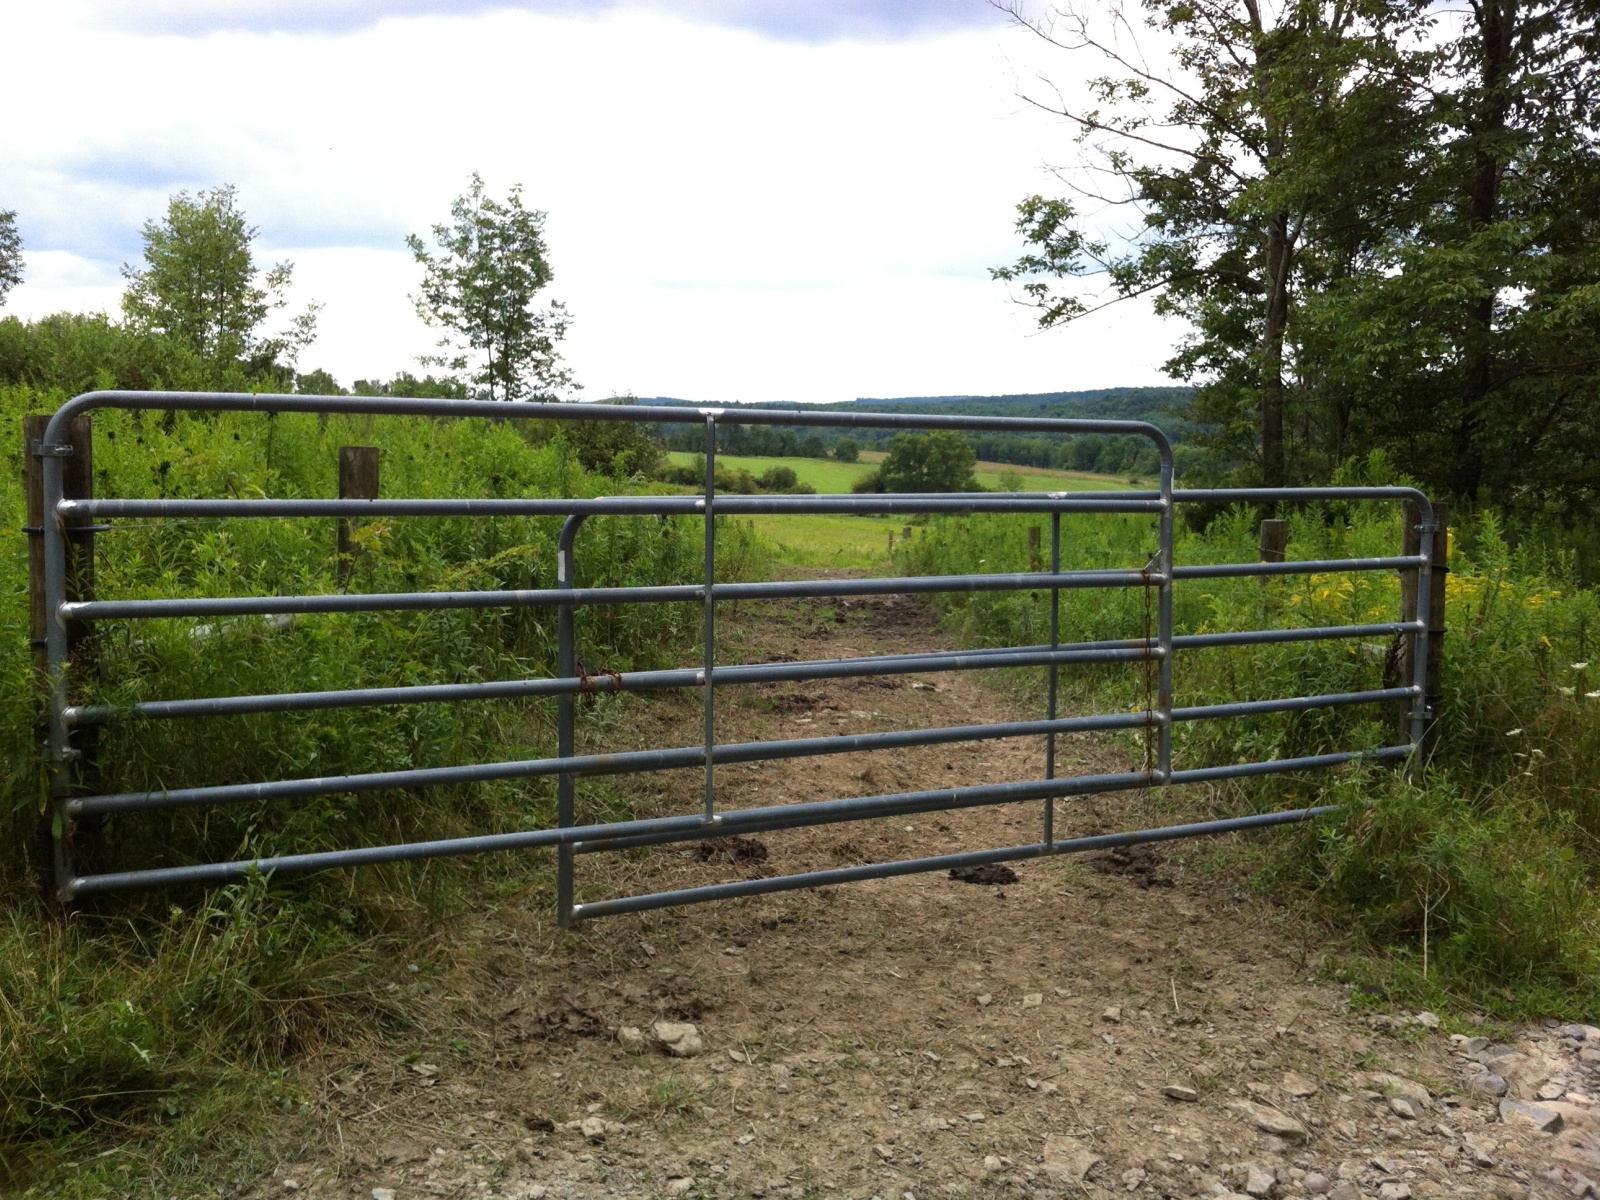 As part of their grazing system, the landowners installed fencing, gates, and laneways to control livestock